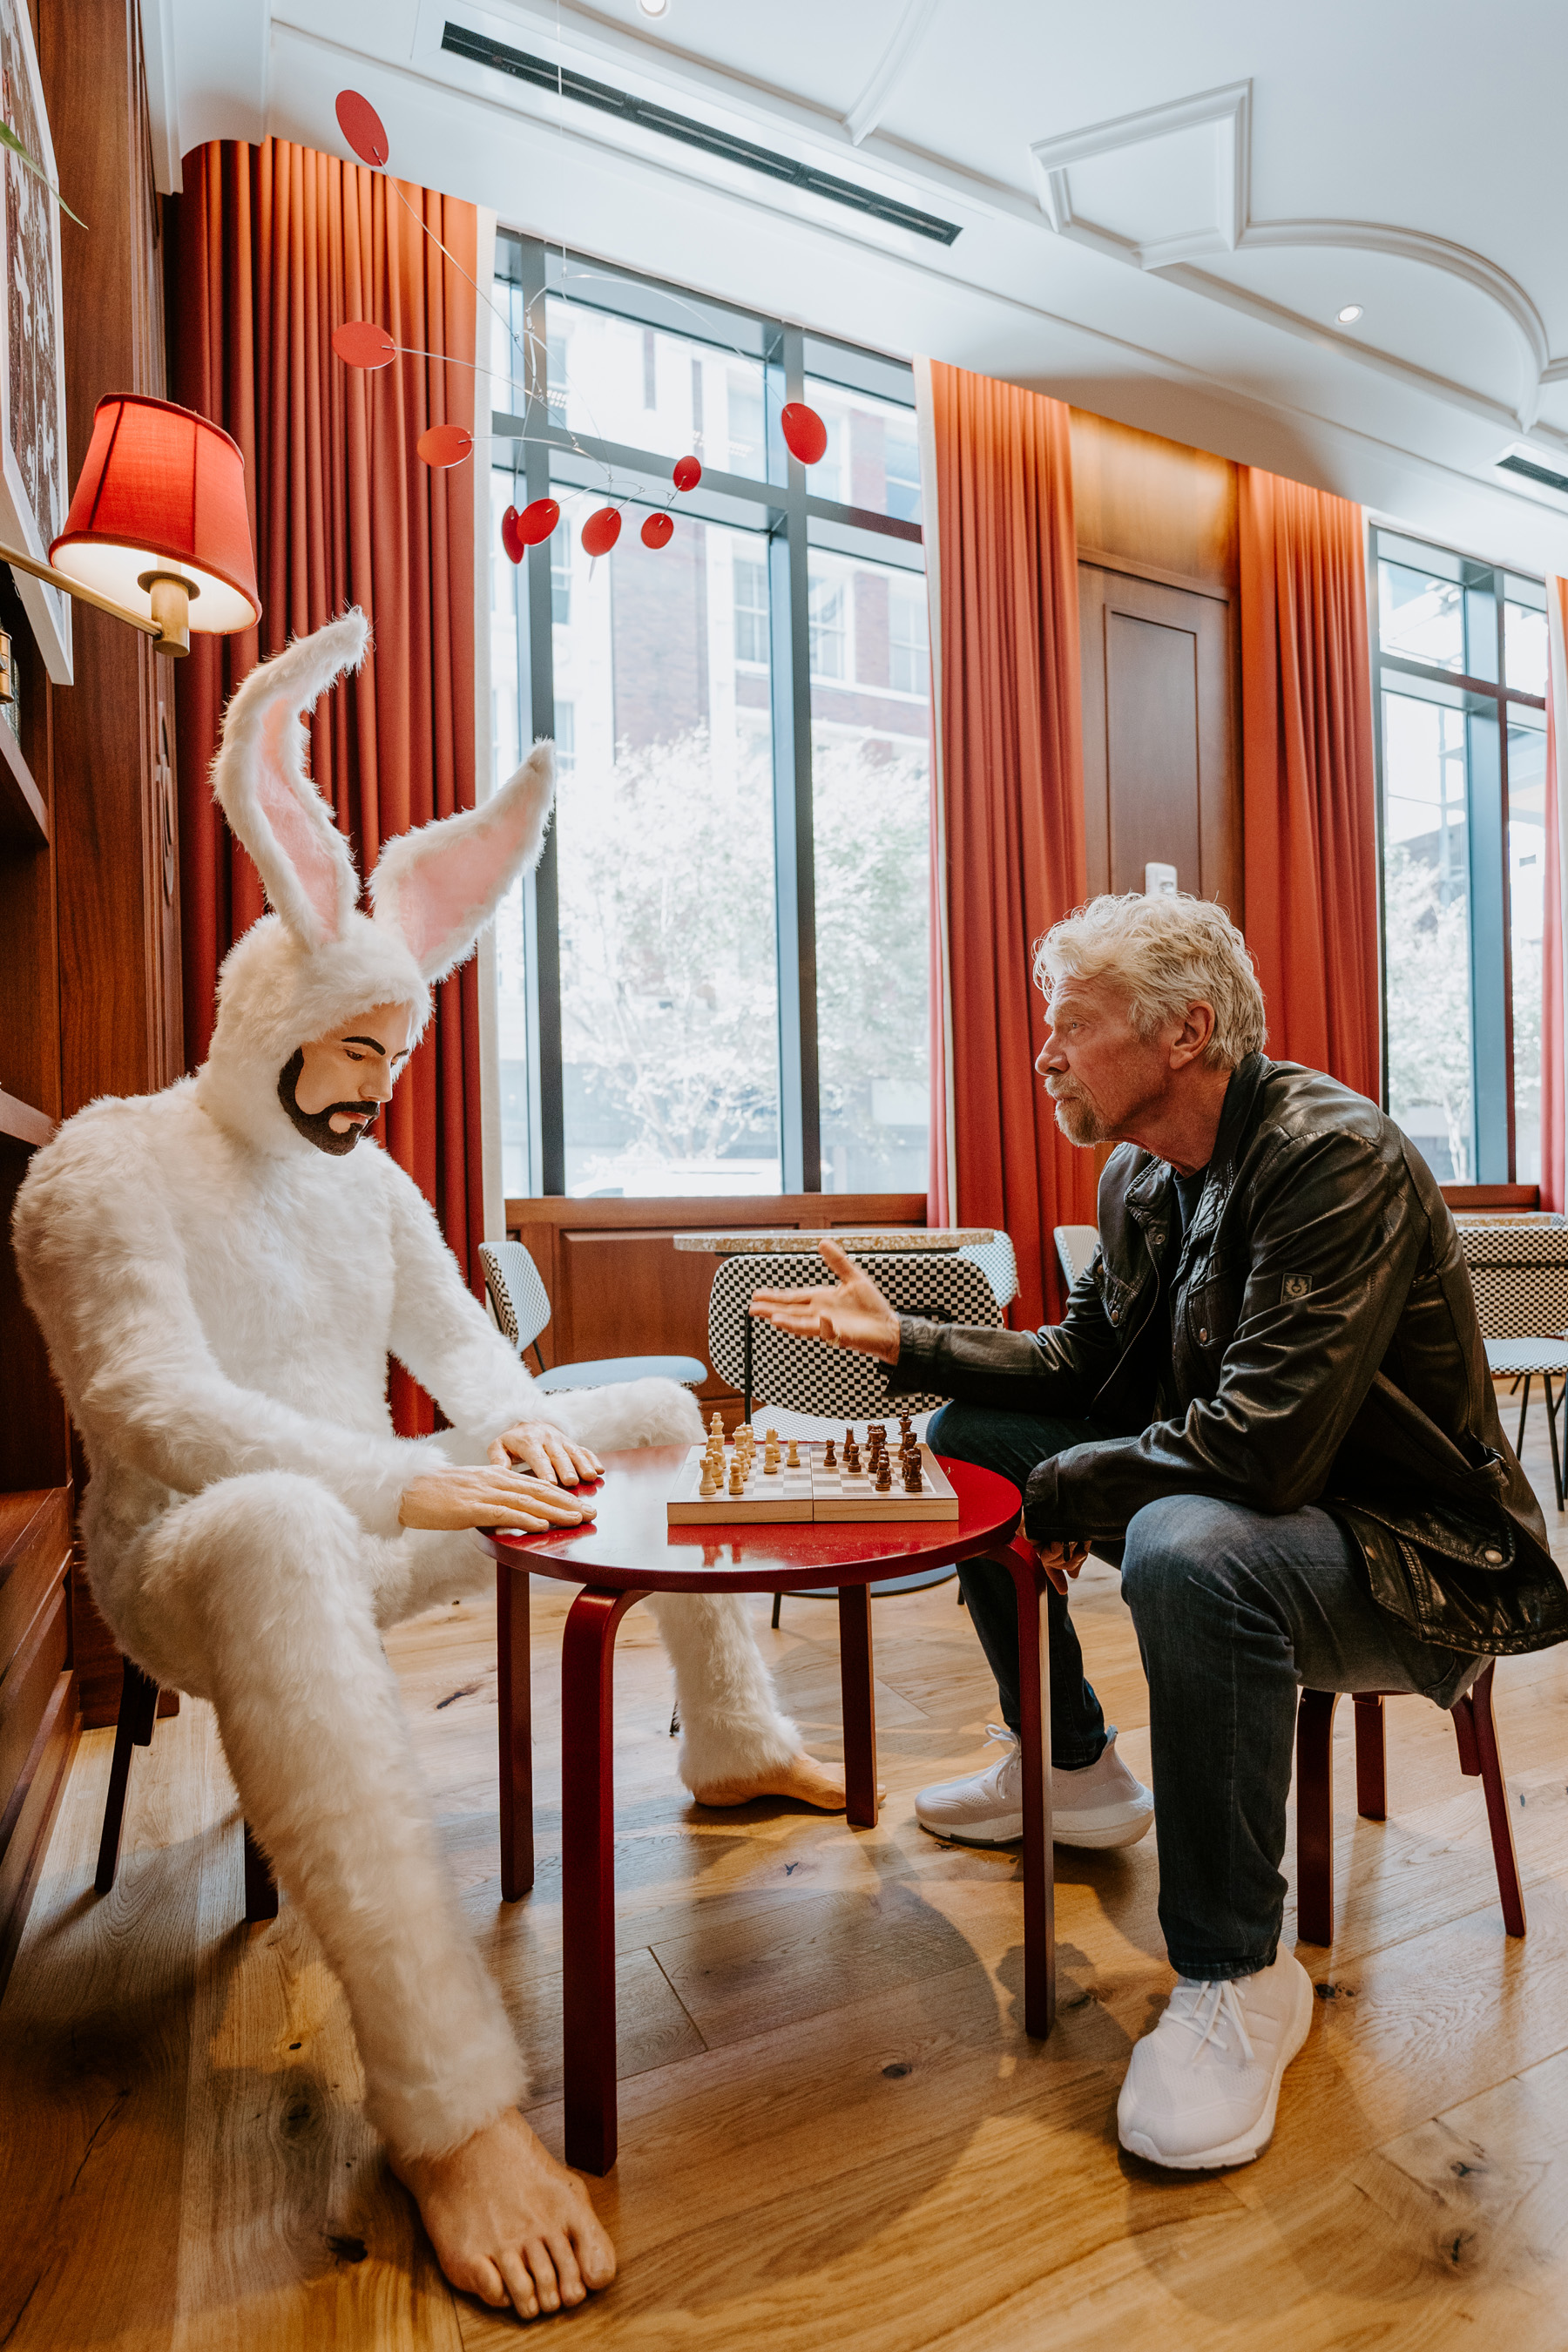 Sir Richard Branson and Bunnyman chatting at the Funny Library Coffee Shop at Virgin Hotels New Orleans